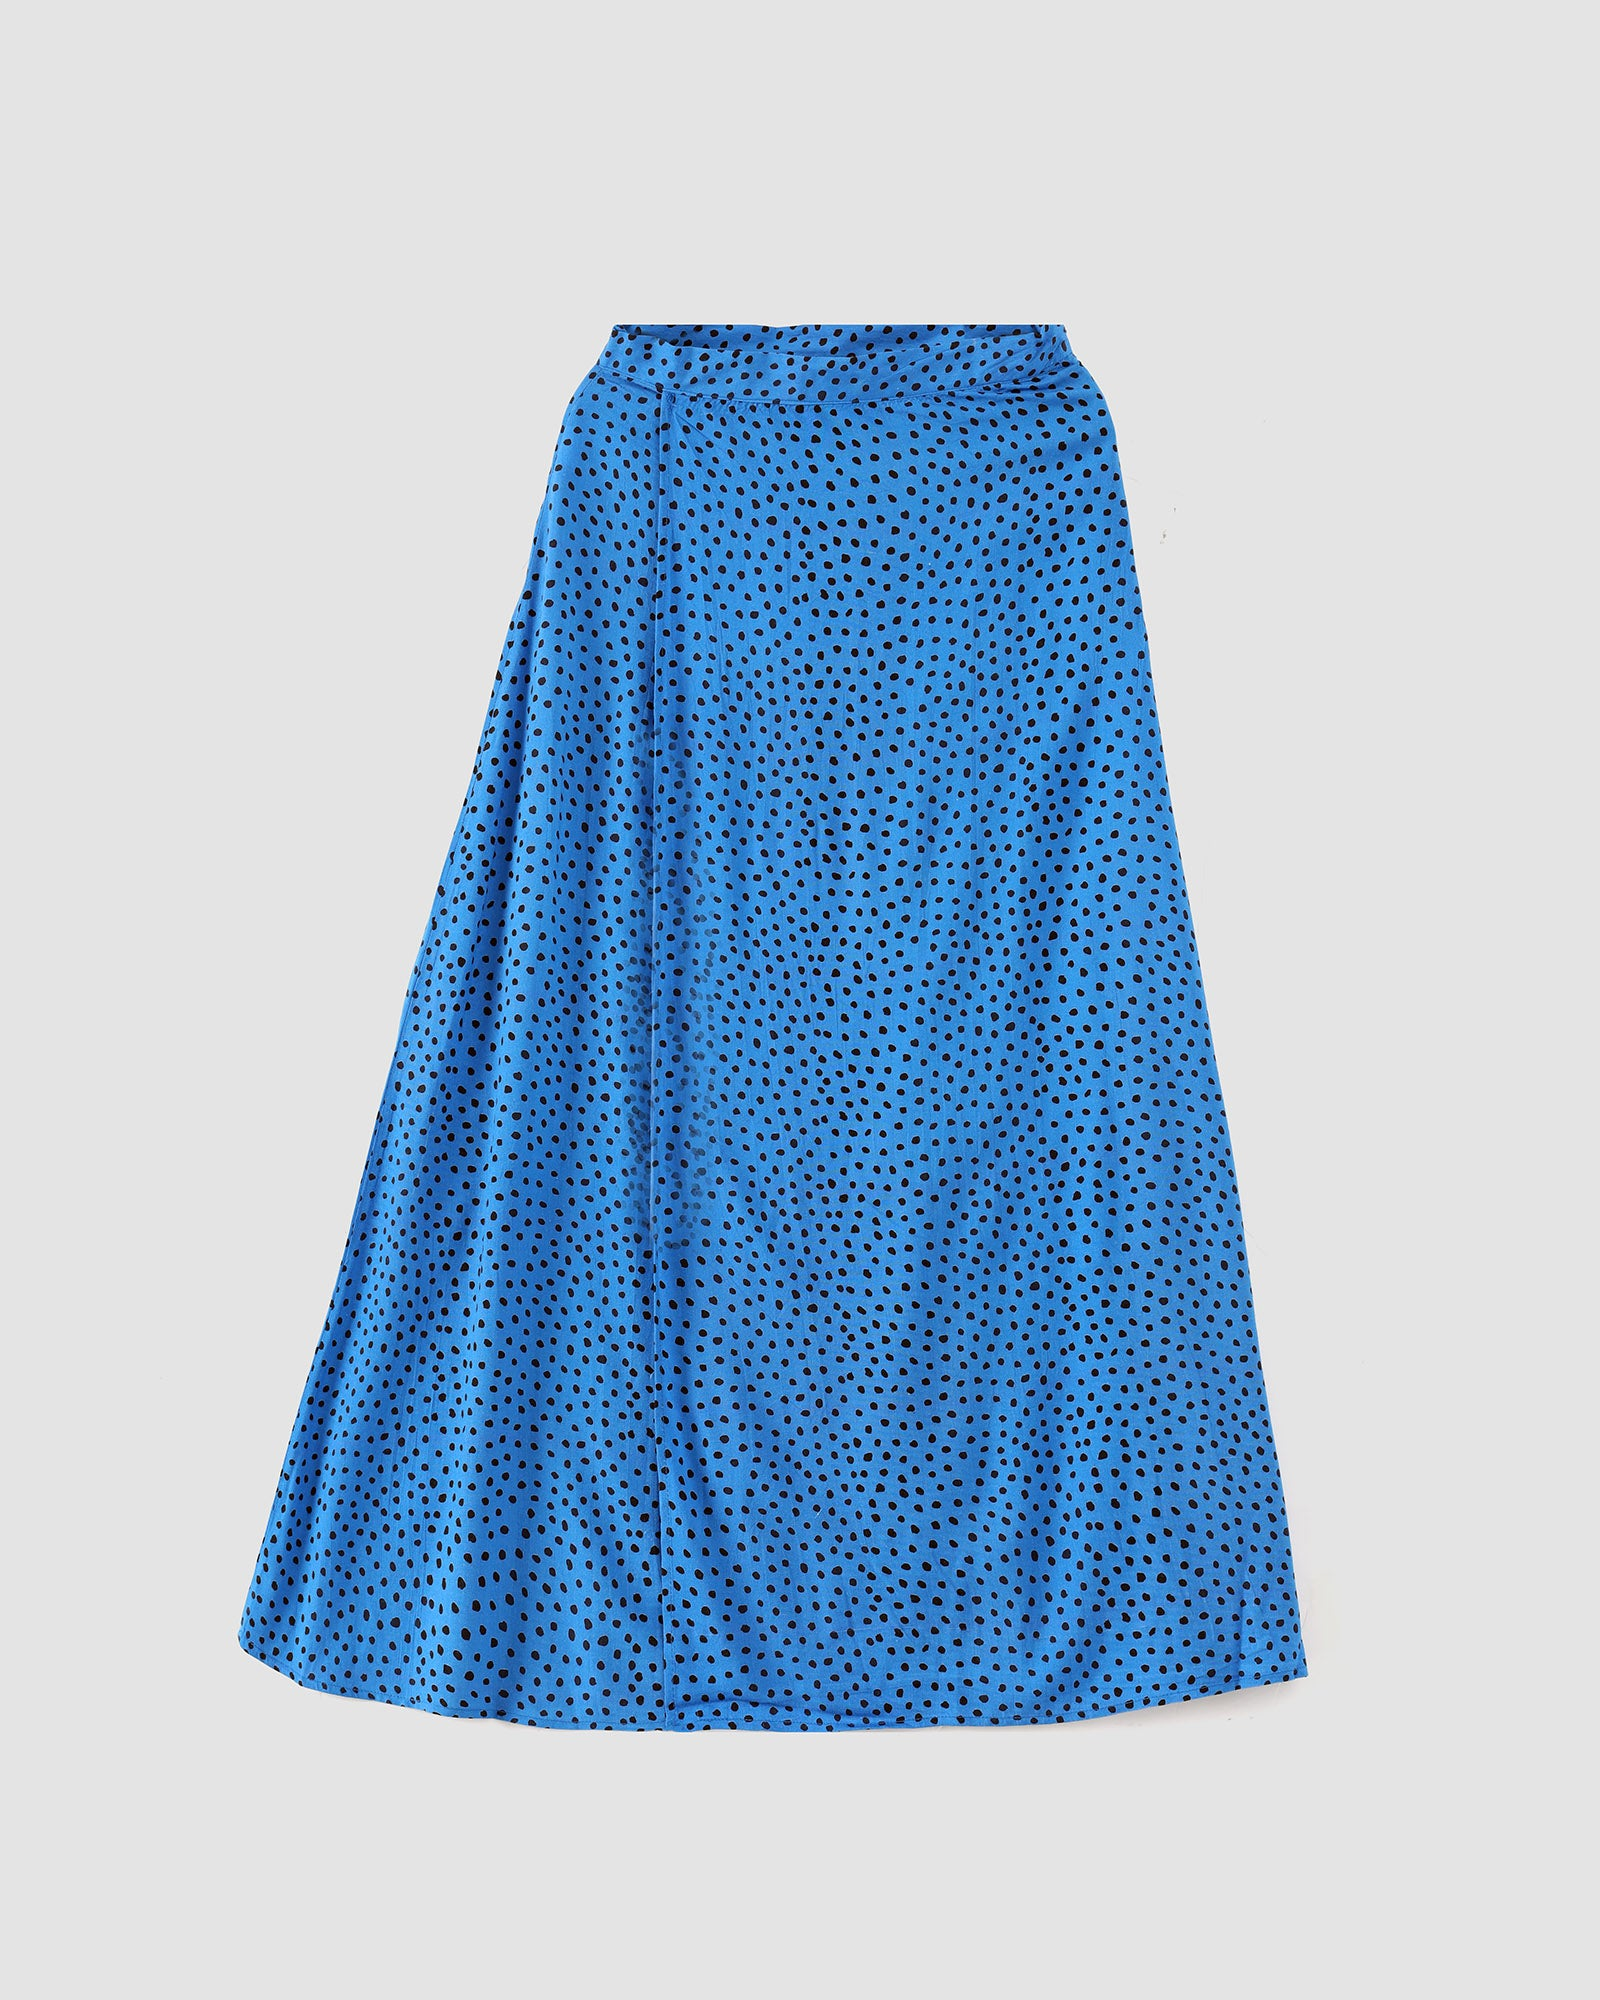 Mutated Polka Dot Flared Skirt